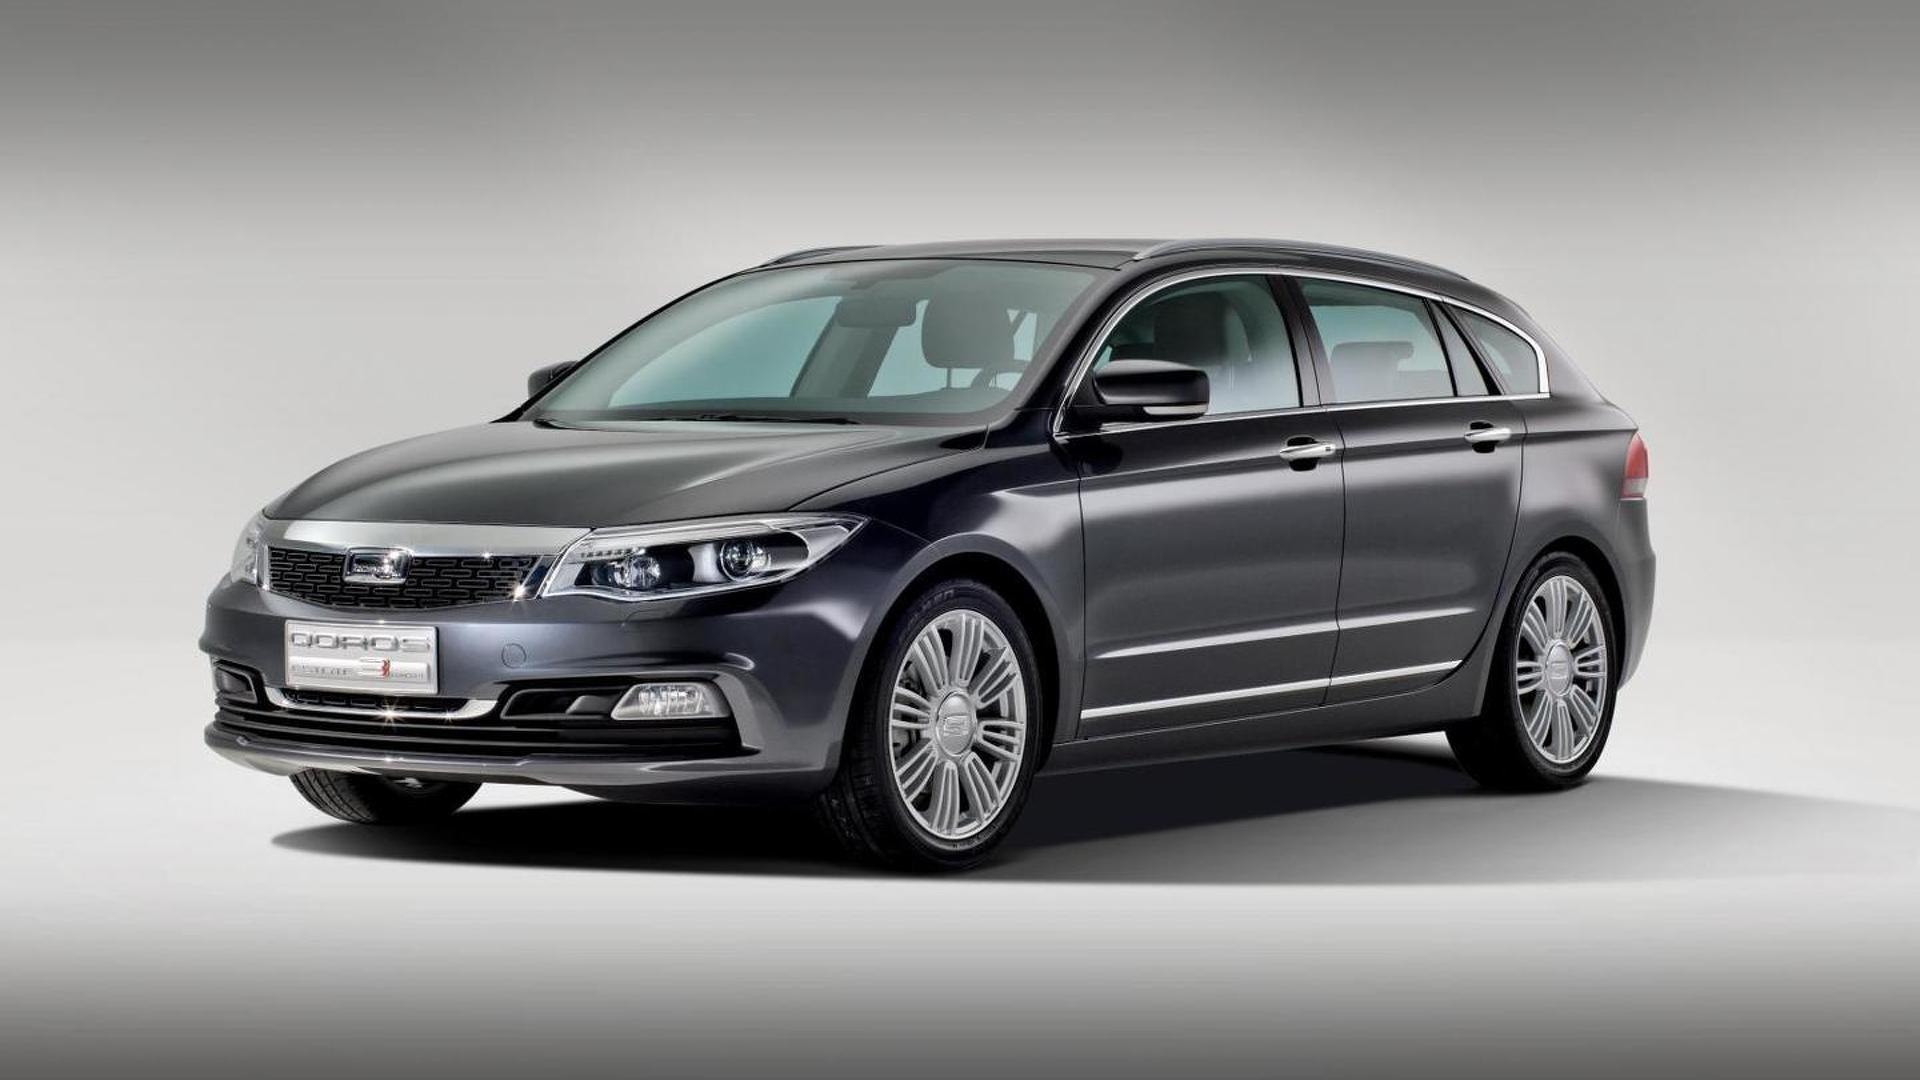 Qoros 3 Sedan, Cross Hybrid Concept and Estate Concept set for Geneva debut